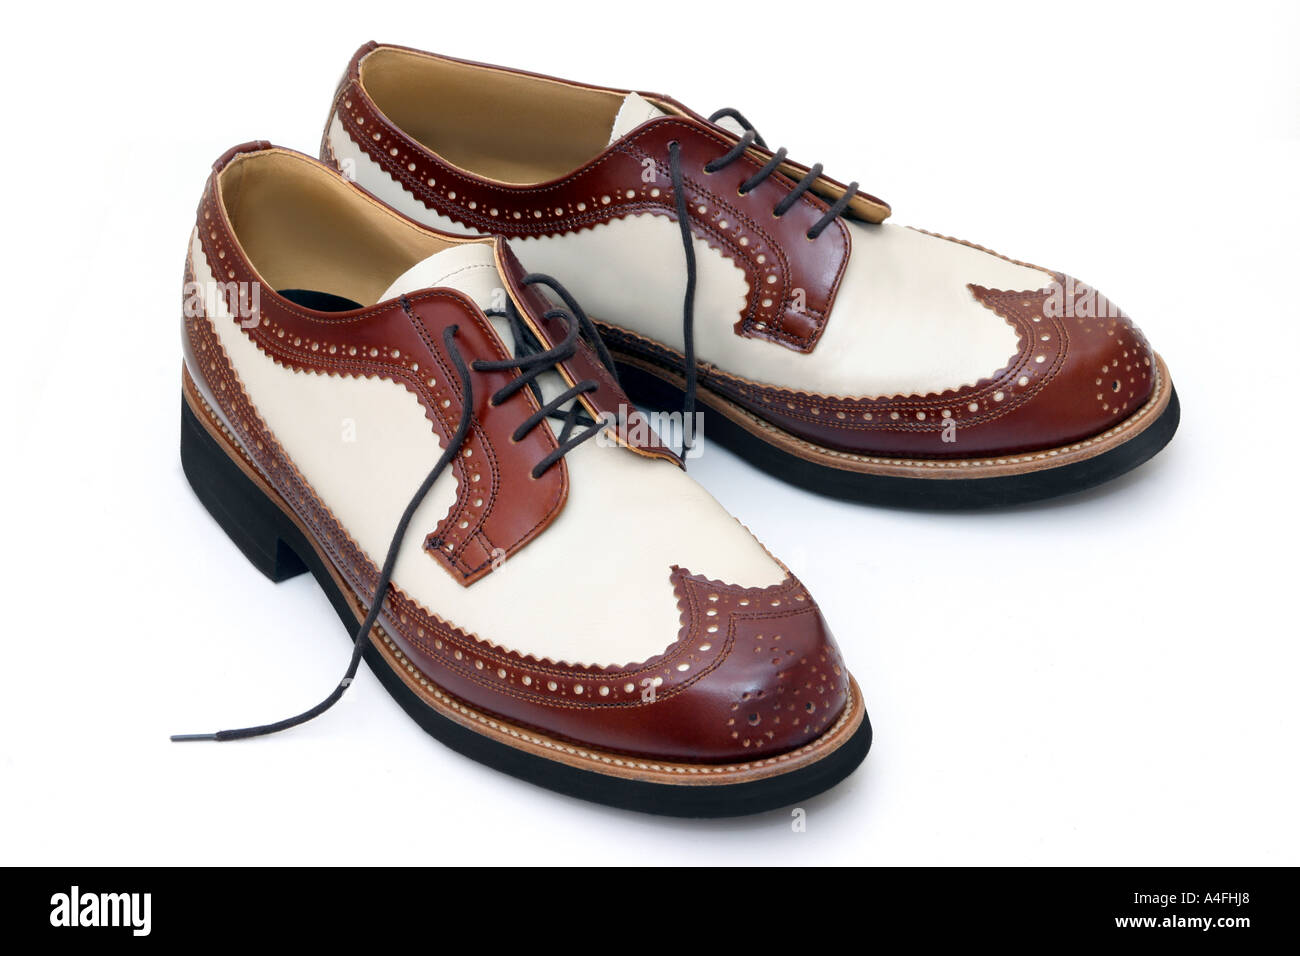 Vintage Shoes High Resolution Stock Photography And Images Alamy